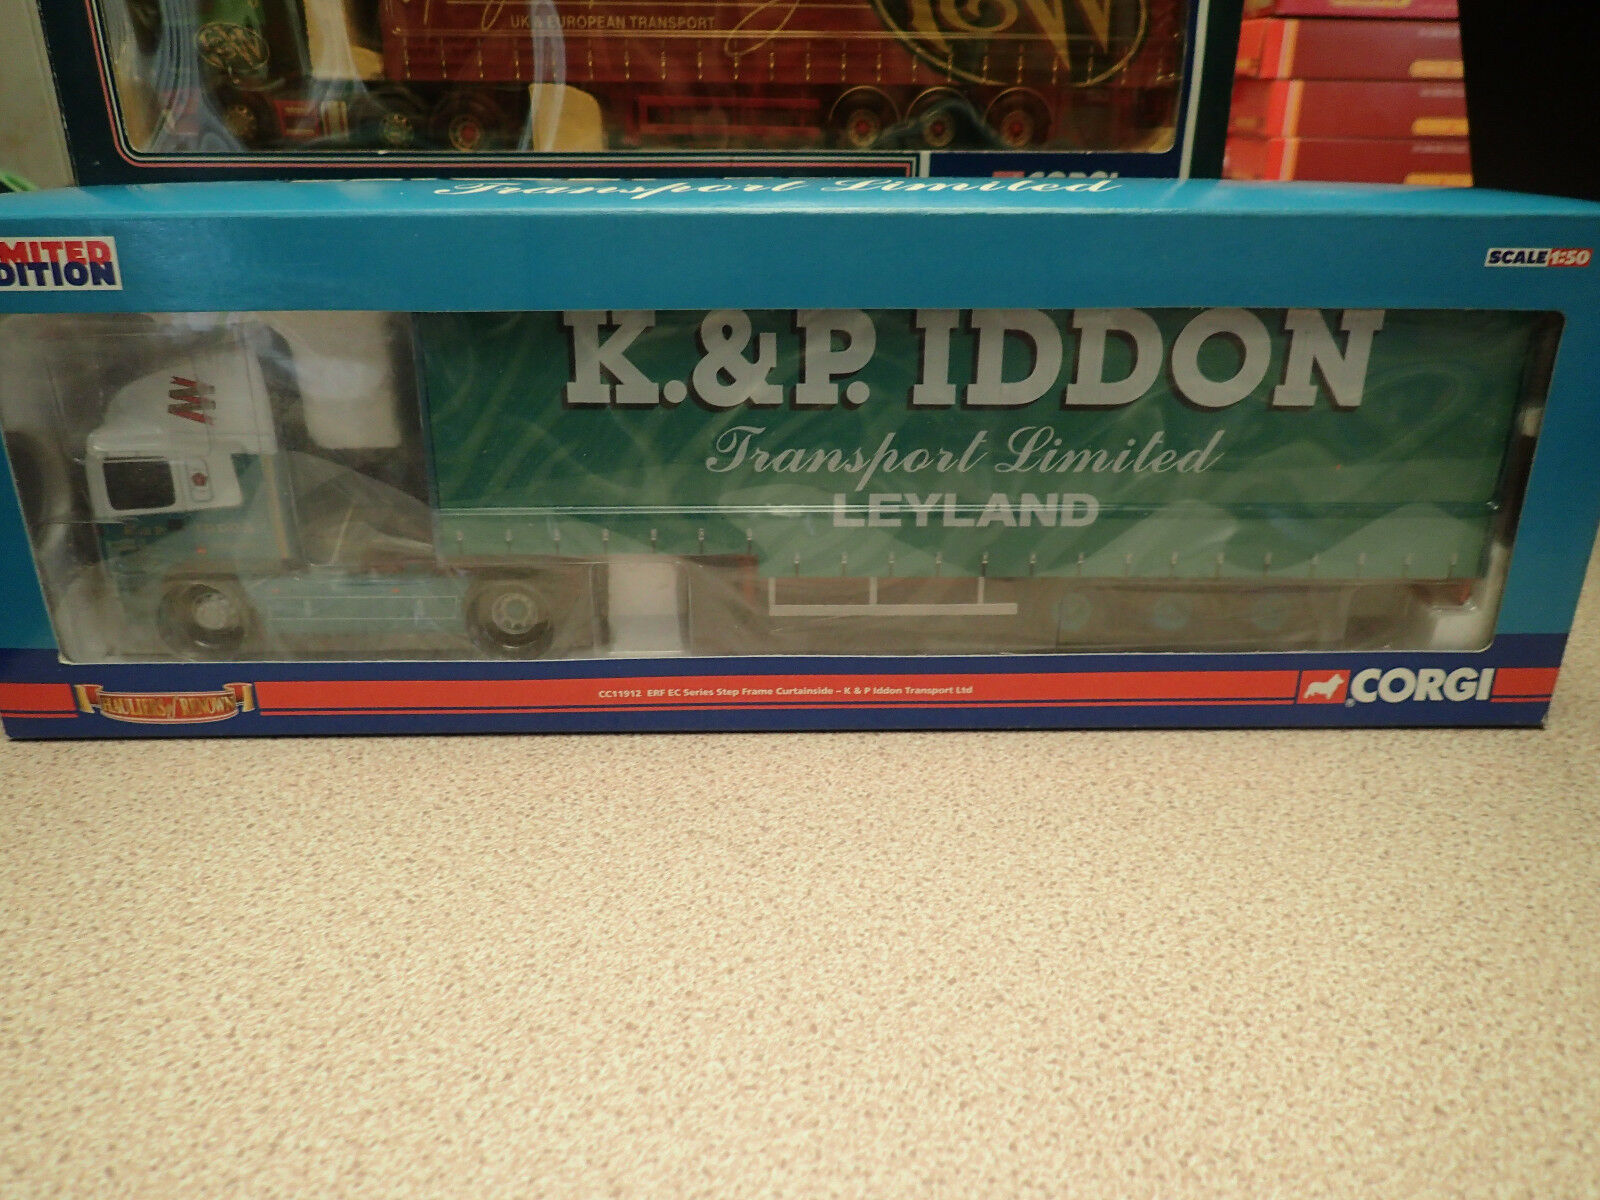 Corgi Ltd Edn CC11912 ERF EC Series Curtainside K&P Iddon Leyland Untouched